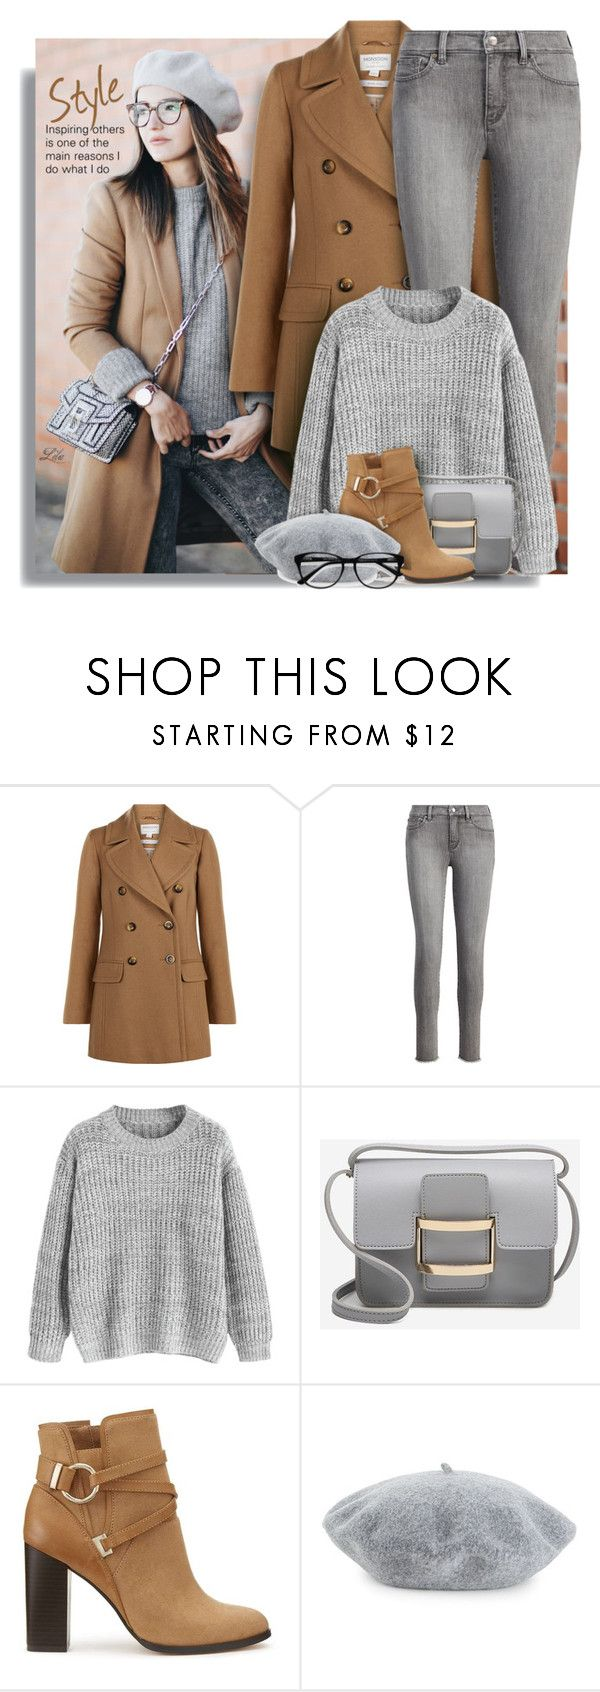 """Get the look - Alexandra Pereira"" by breathing-style ❤ liked on Polyvore featuring Monsoon, Miss Selfridge, Helene Berman and EyeBuyDirect.com"